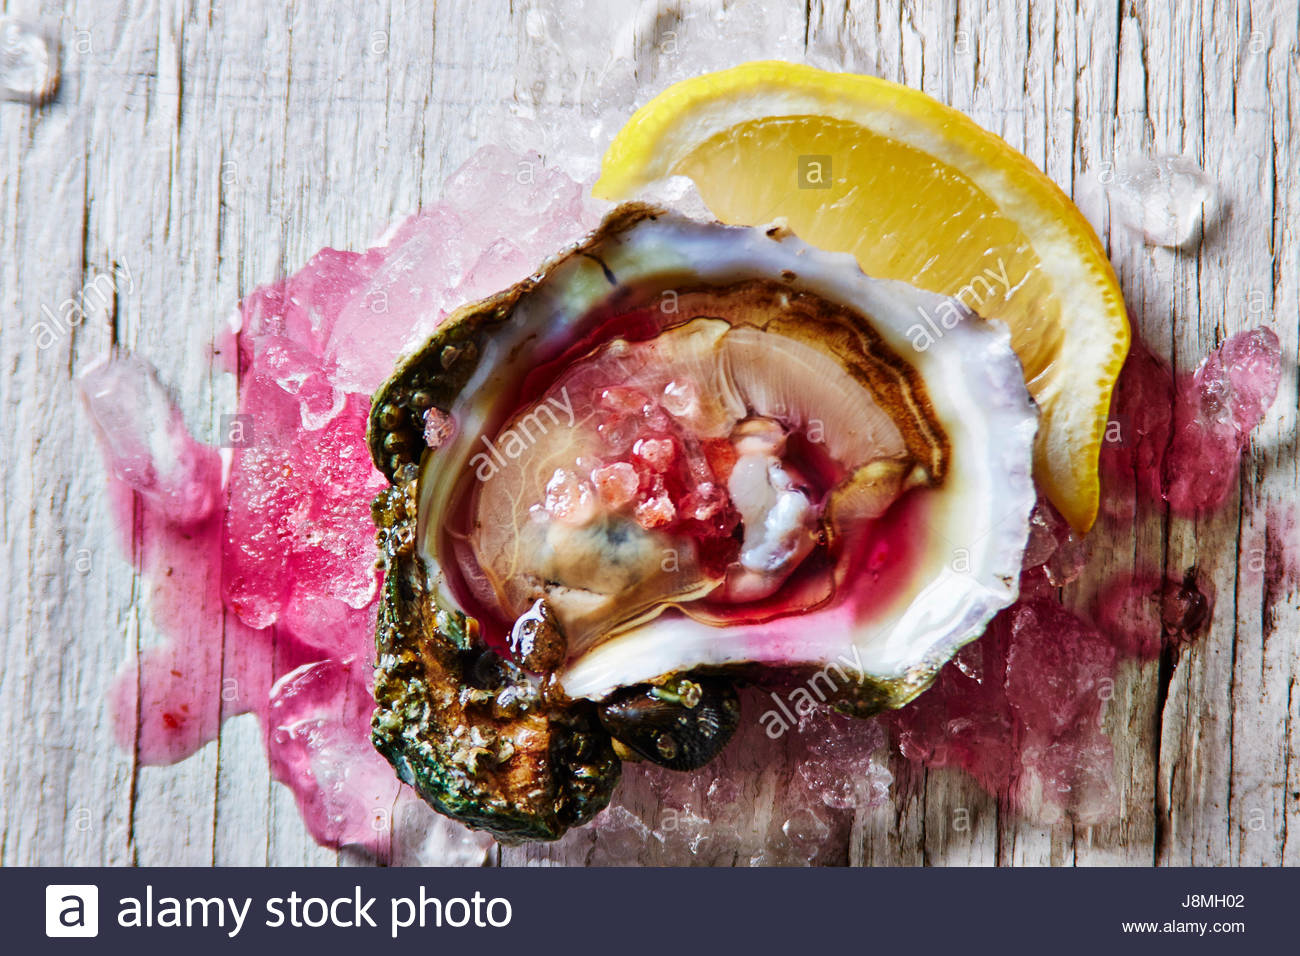 OYSTER IN PINK HIMALAYA SEA SALT,AND KIMCHI JUICE - Stock Image